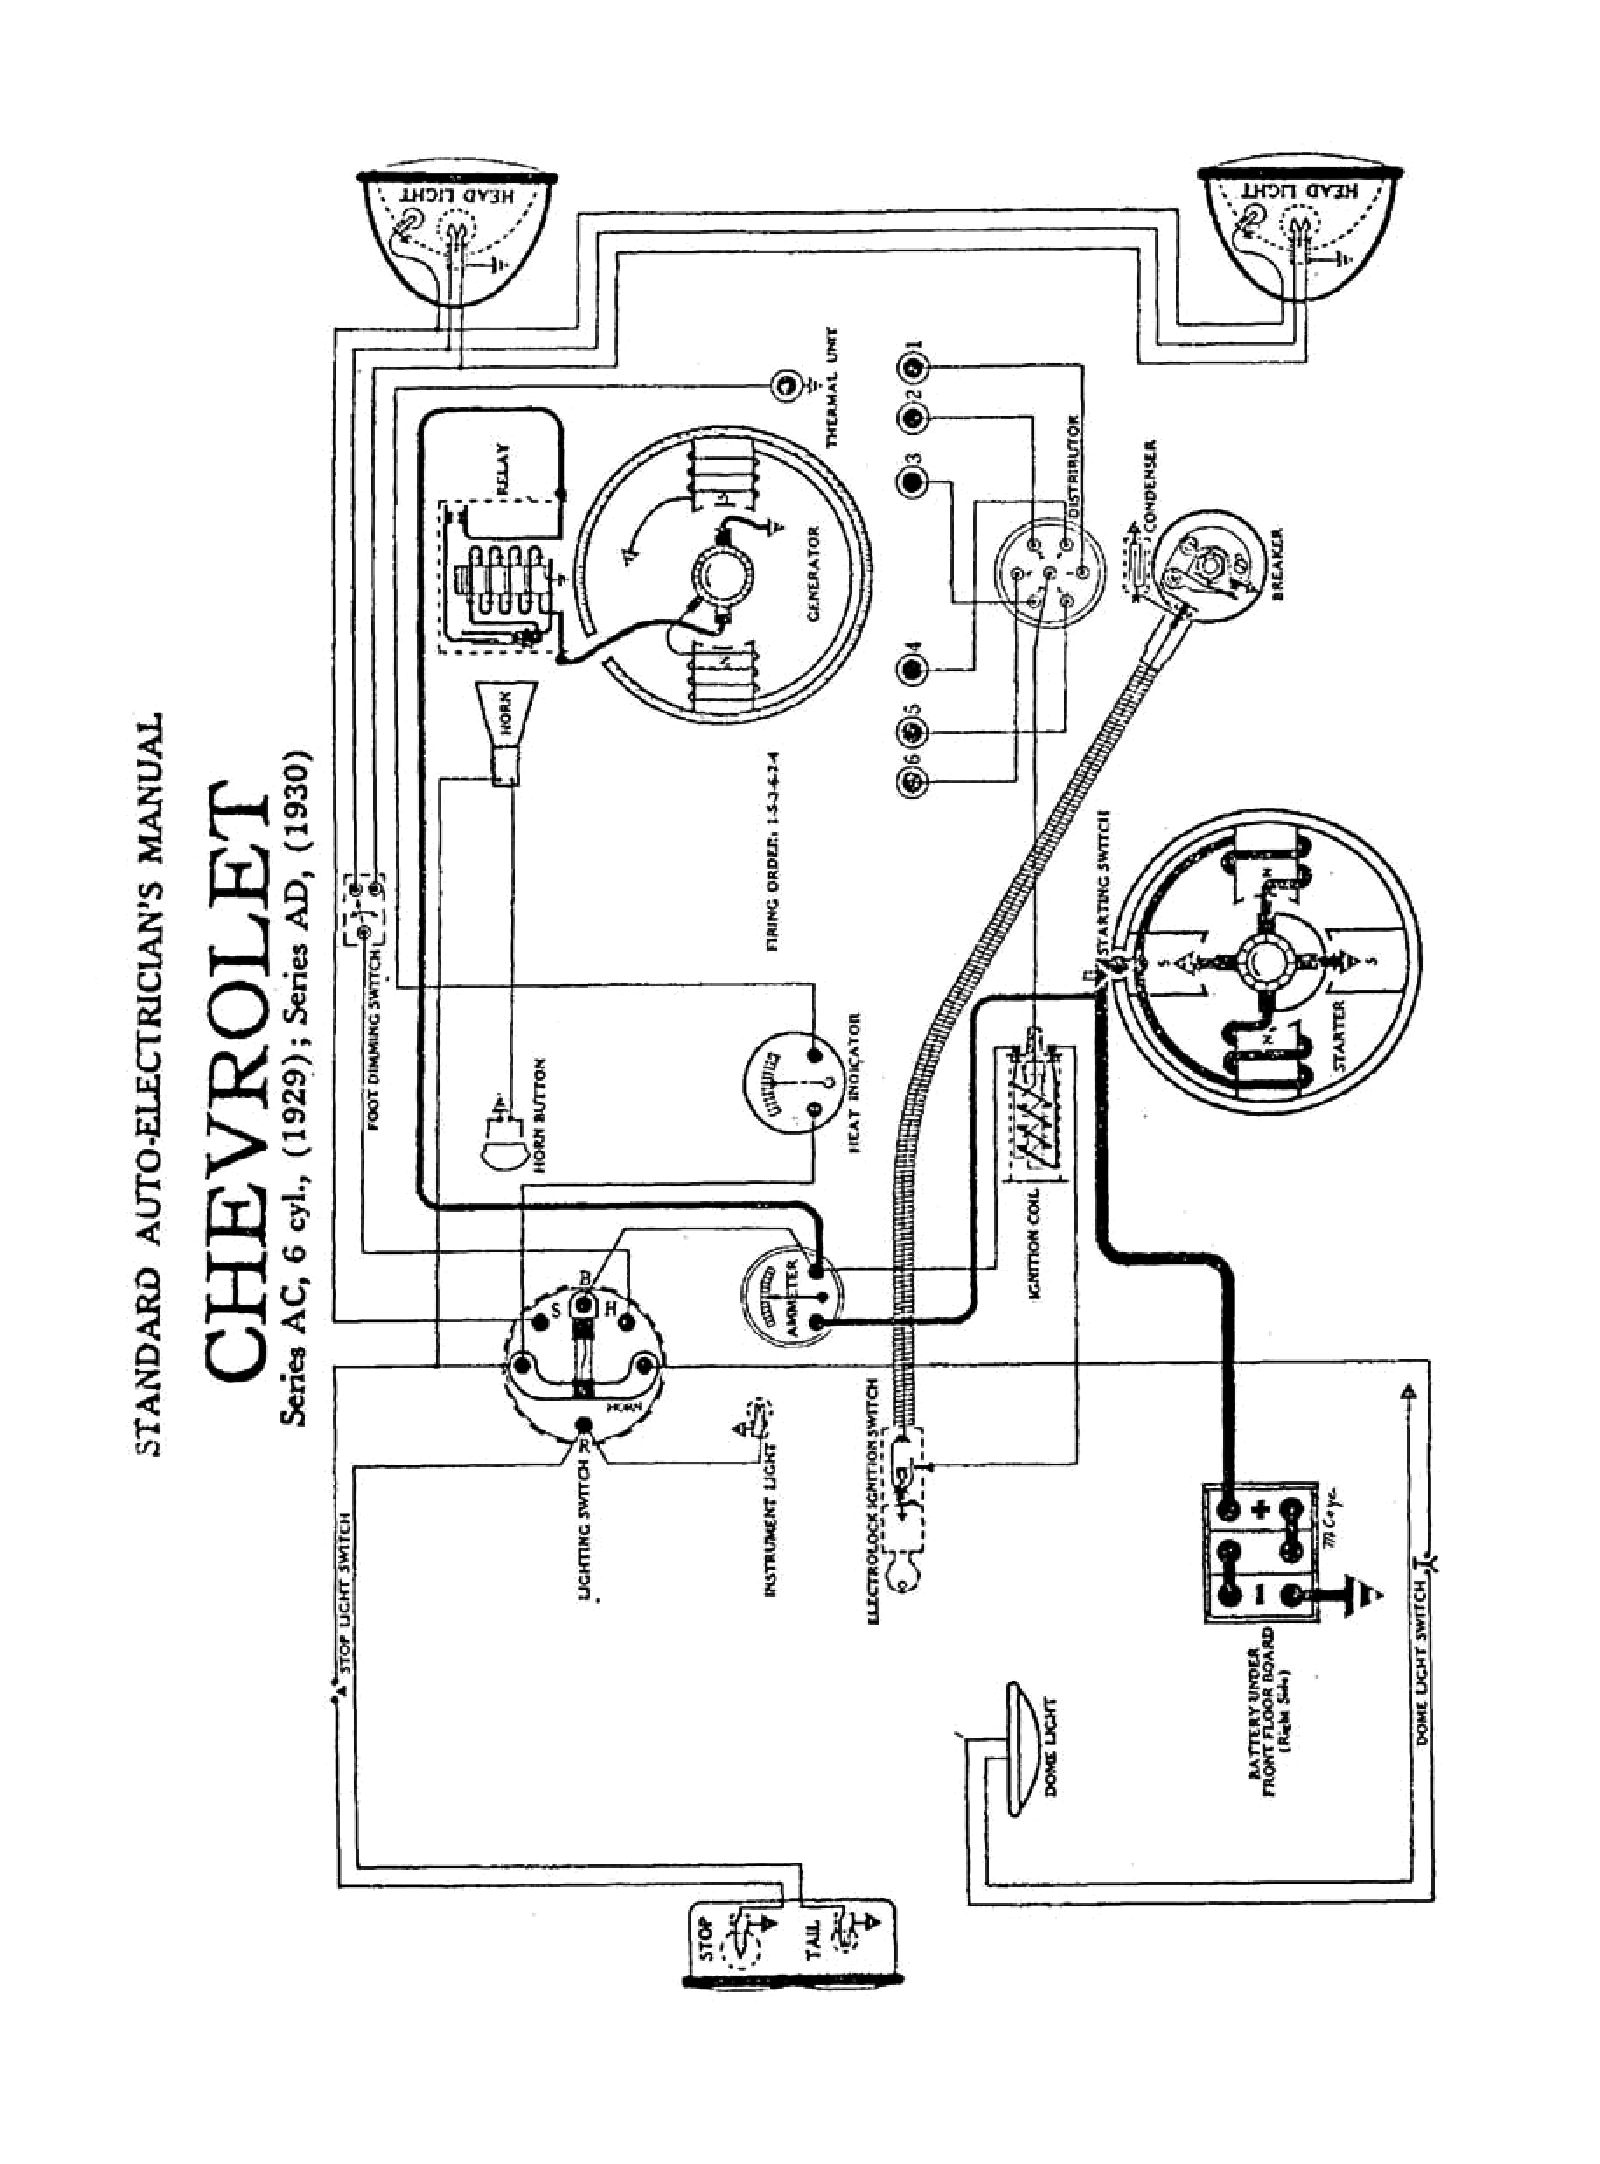 1930 ford stop light wiring diagram 1930 free engine 1930 Model A ...